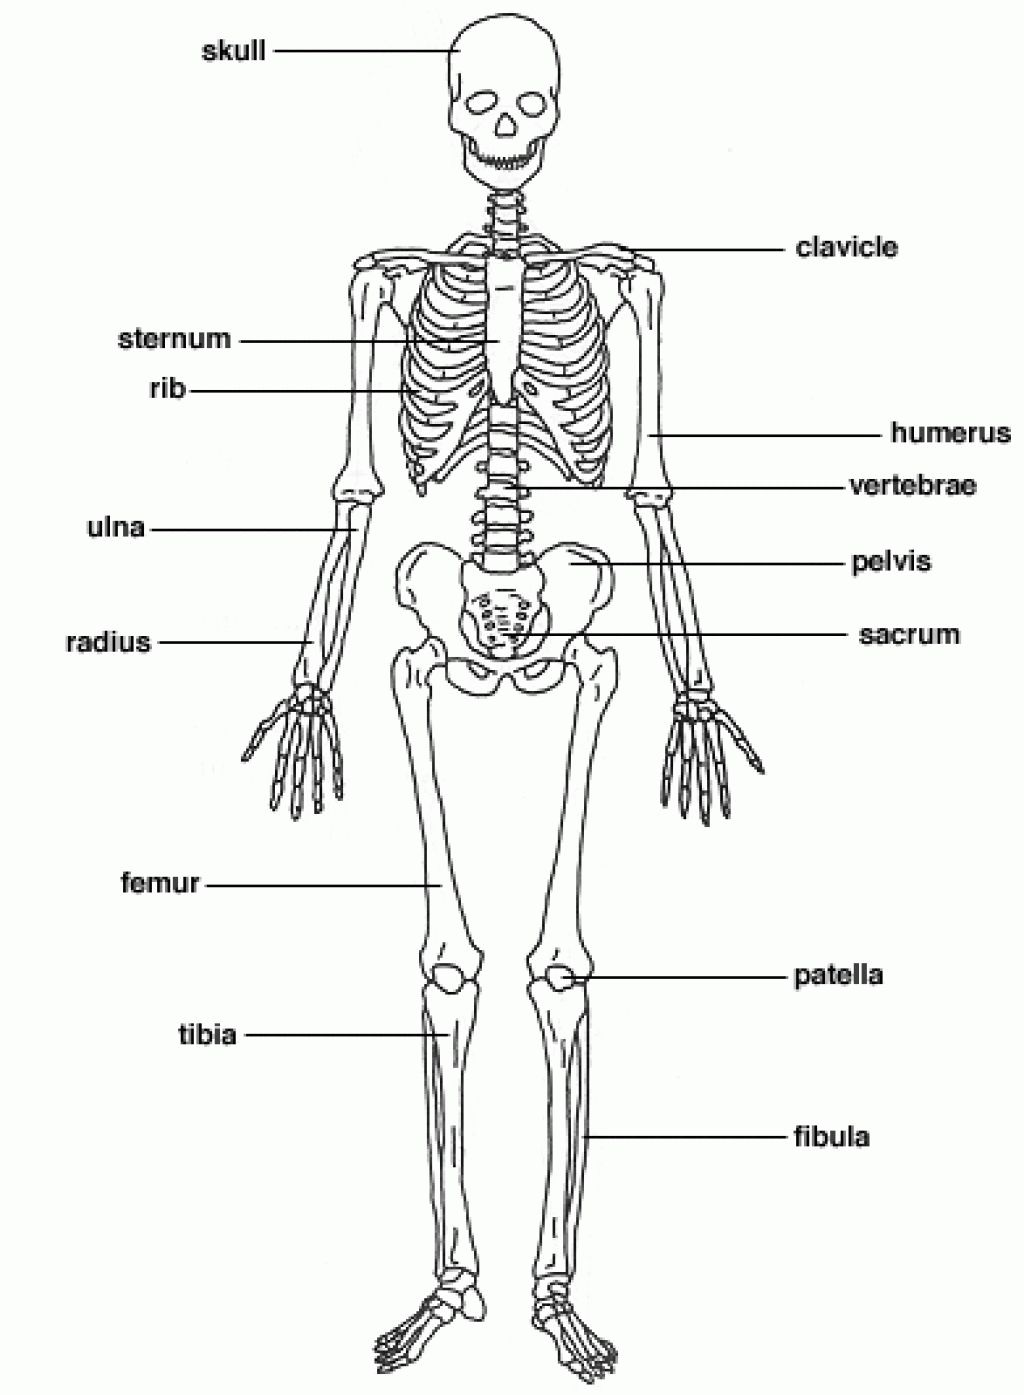 medium resolution of the skeletal system diagram labeled the skeletal system diagram labeled skeleton system diagrams labeled diagram